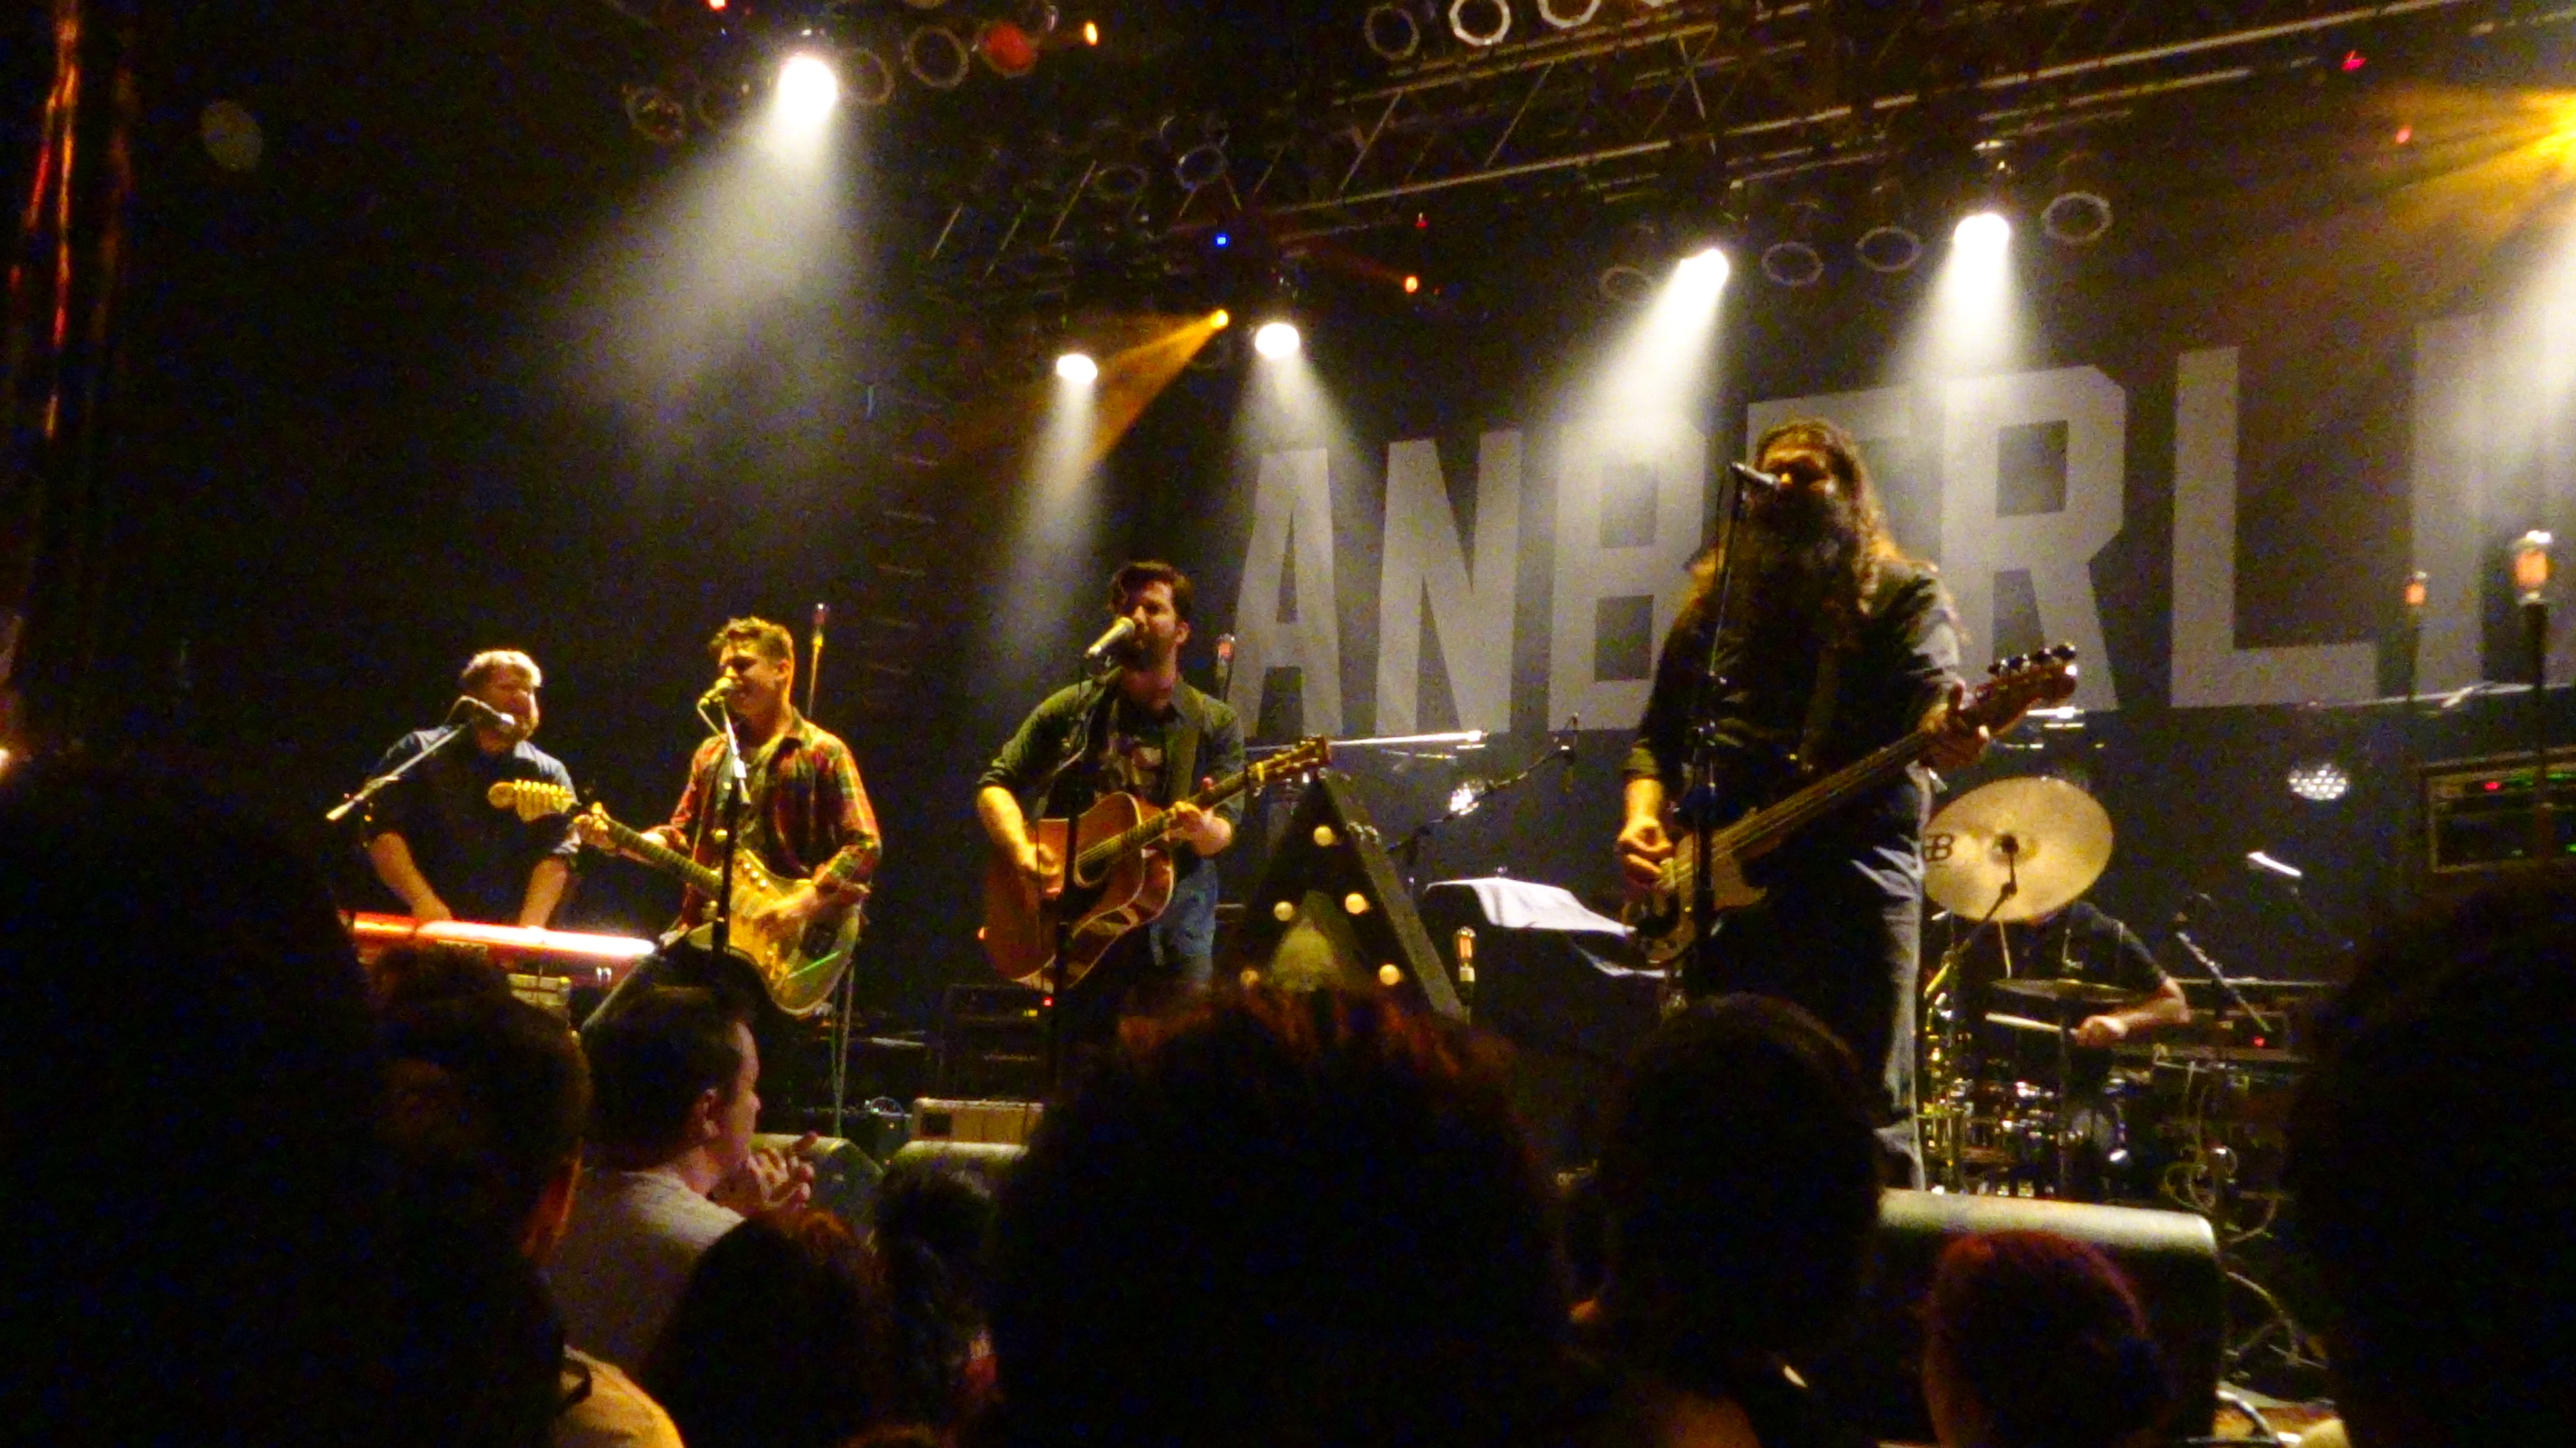 anberlin live from house of blues anaheim